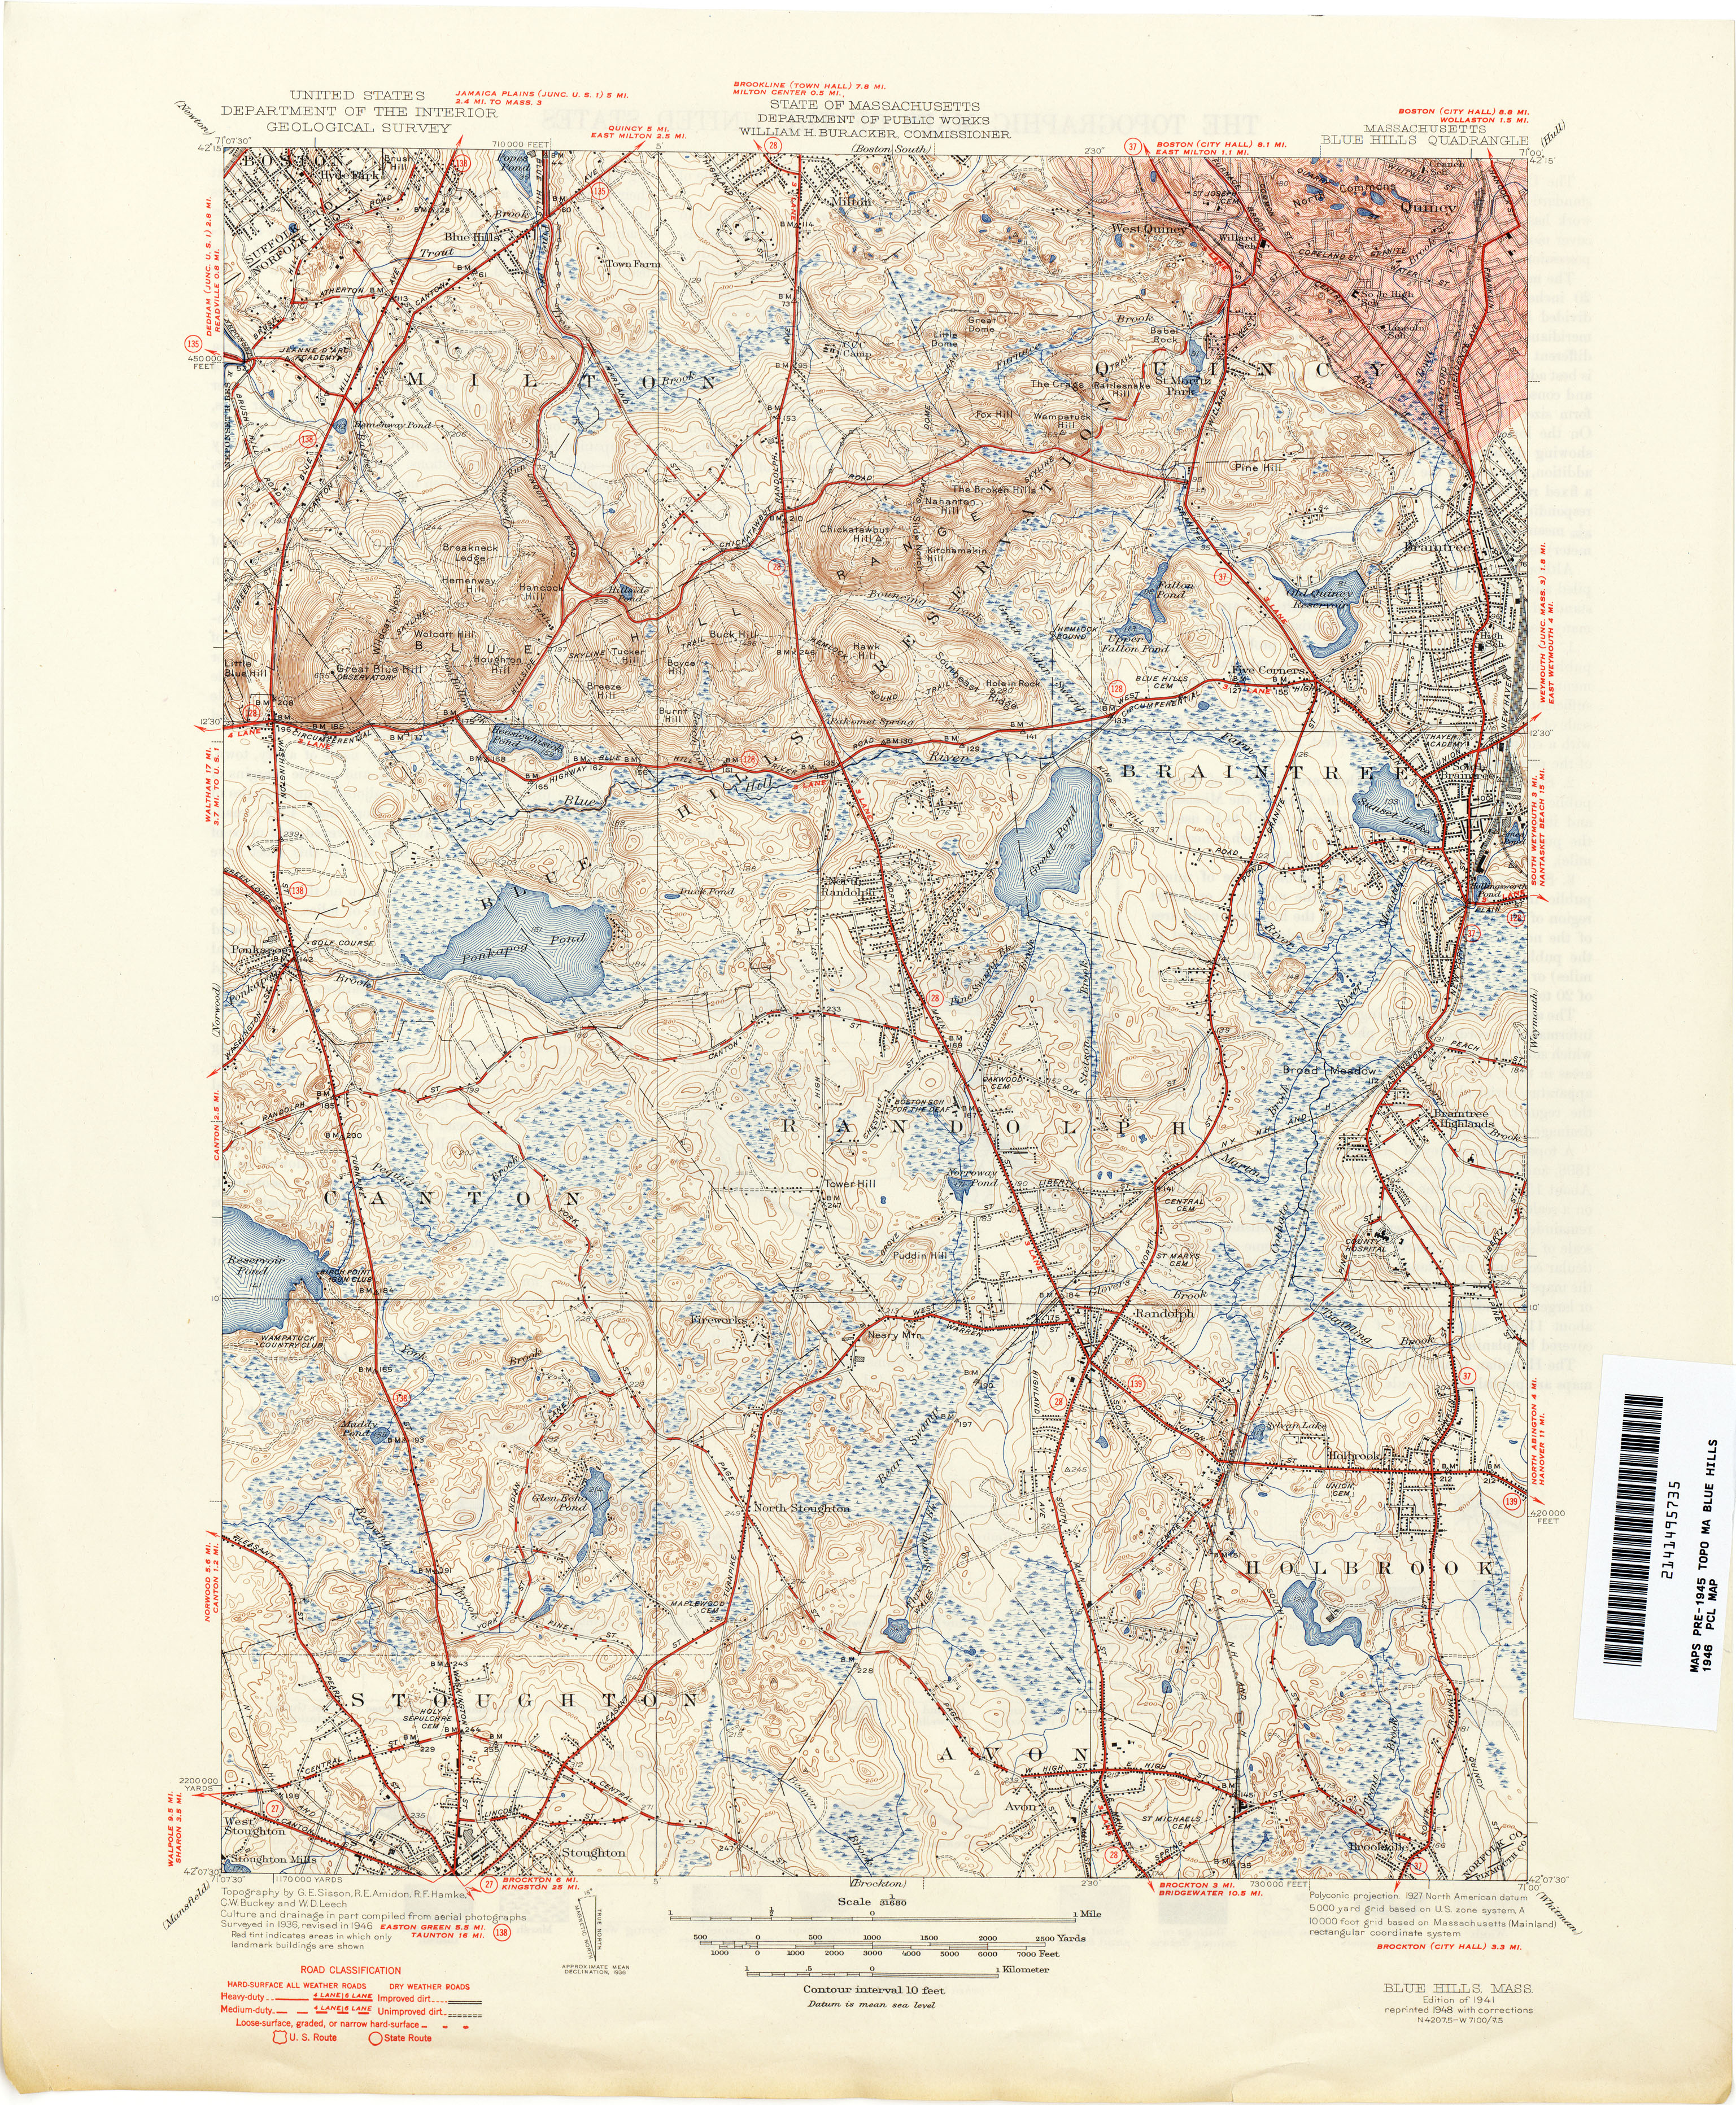 Hill Topographic Map.Massachusetts Historical Topographic Maps Perry Castaneda Map